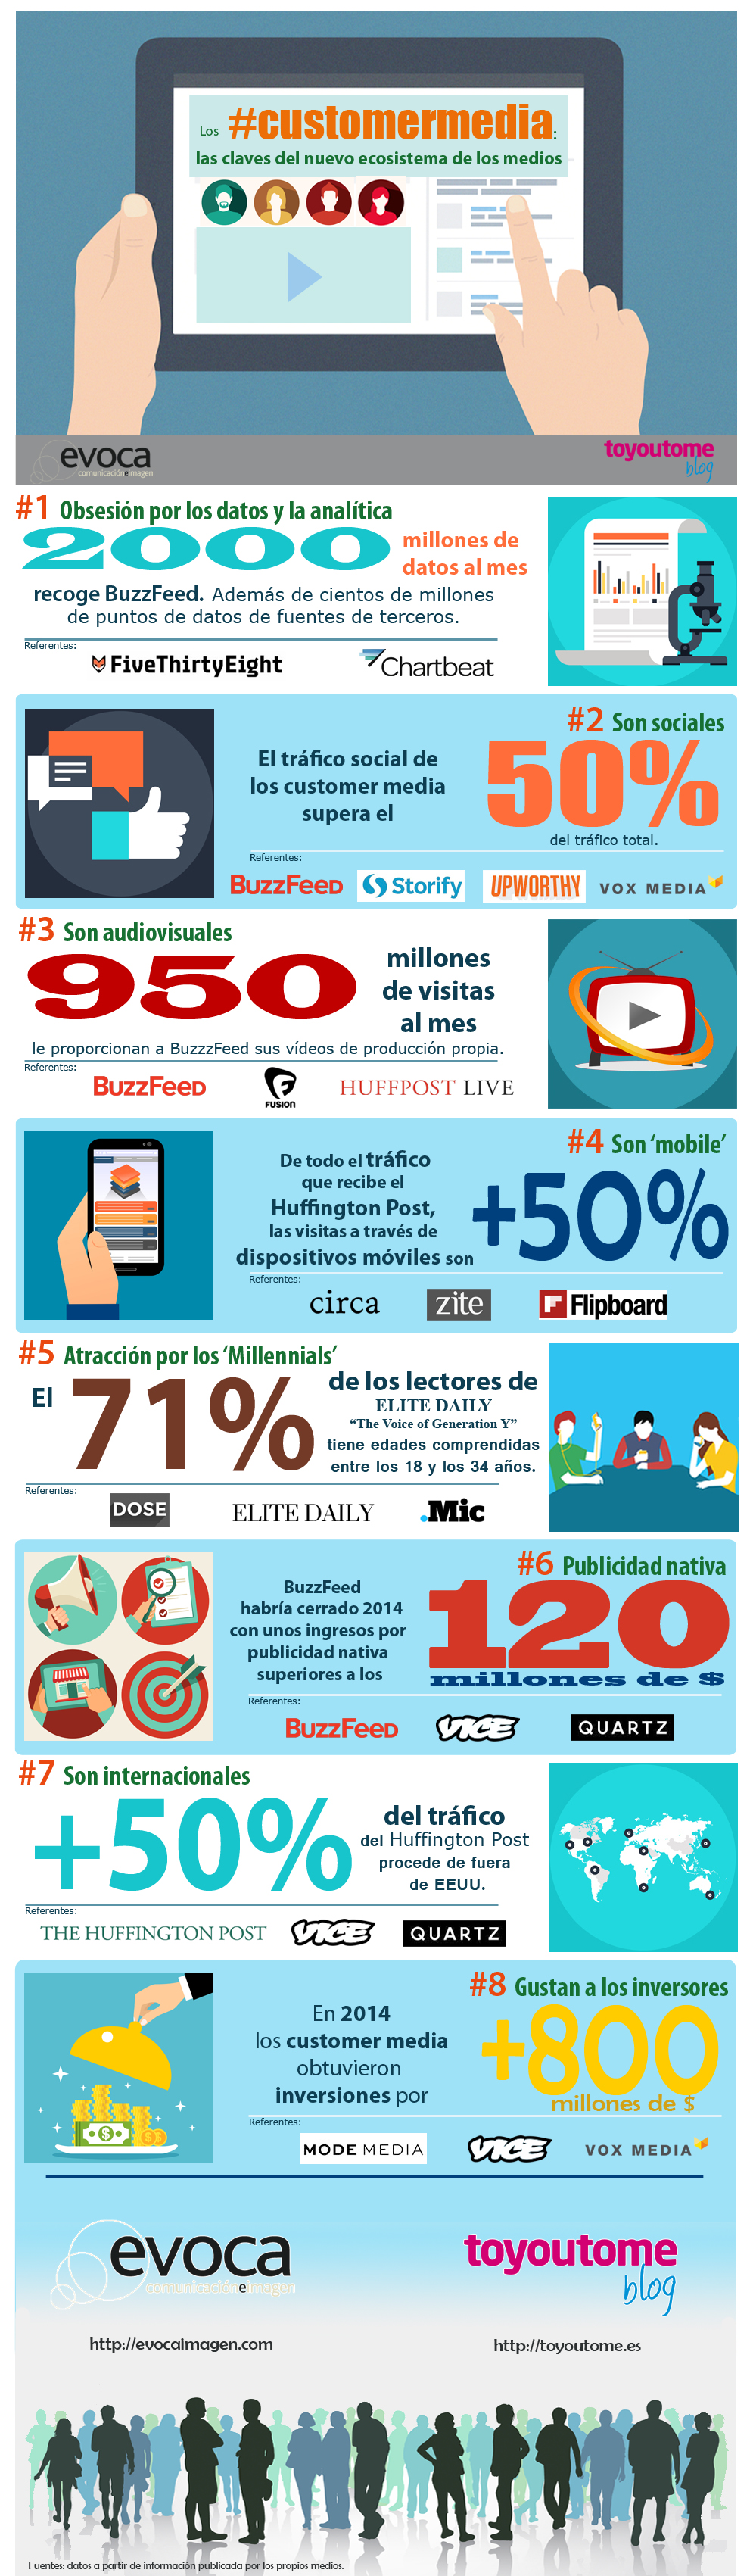 CustomerMedia_Infograph_Evoca_Toyoutomeblog 2